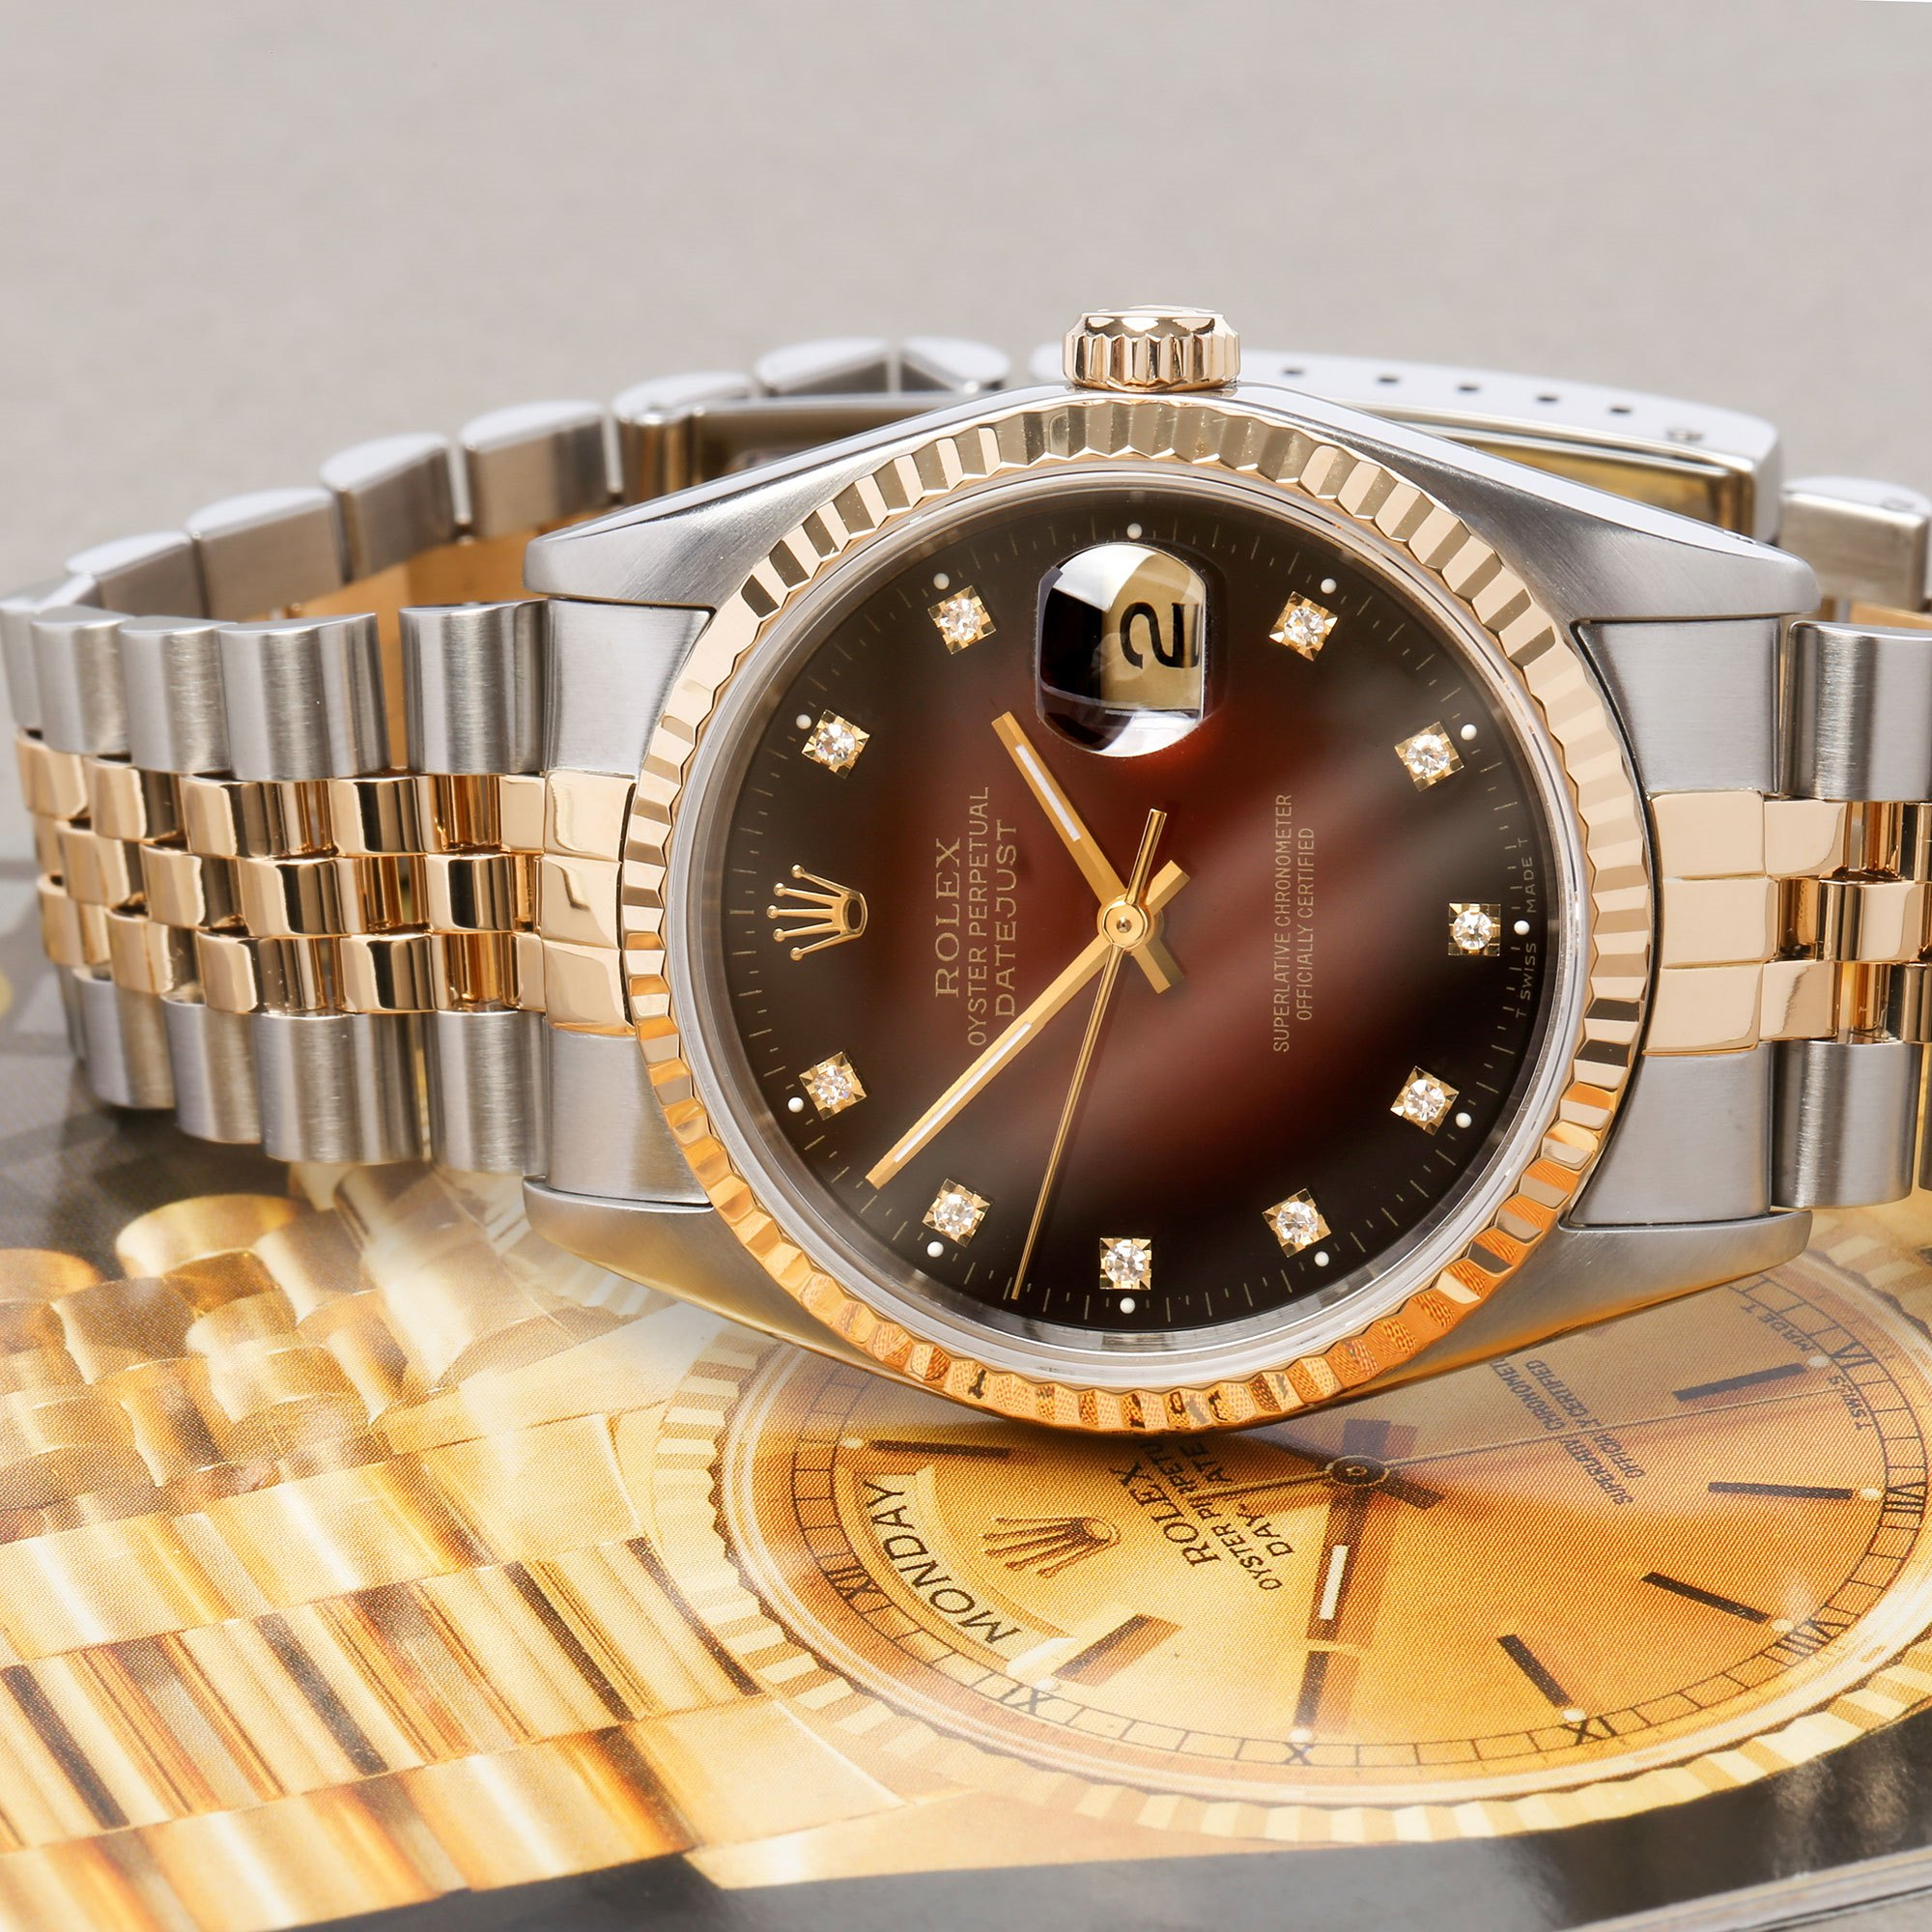 Rolex Datejust 36 'Vignette' Dial 18K Yellow Gold & Stainless Steel 16233